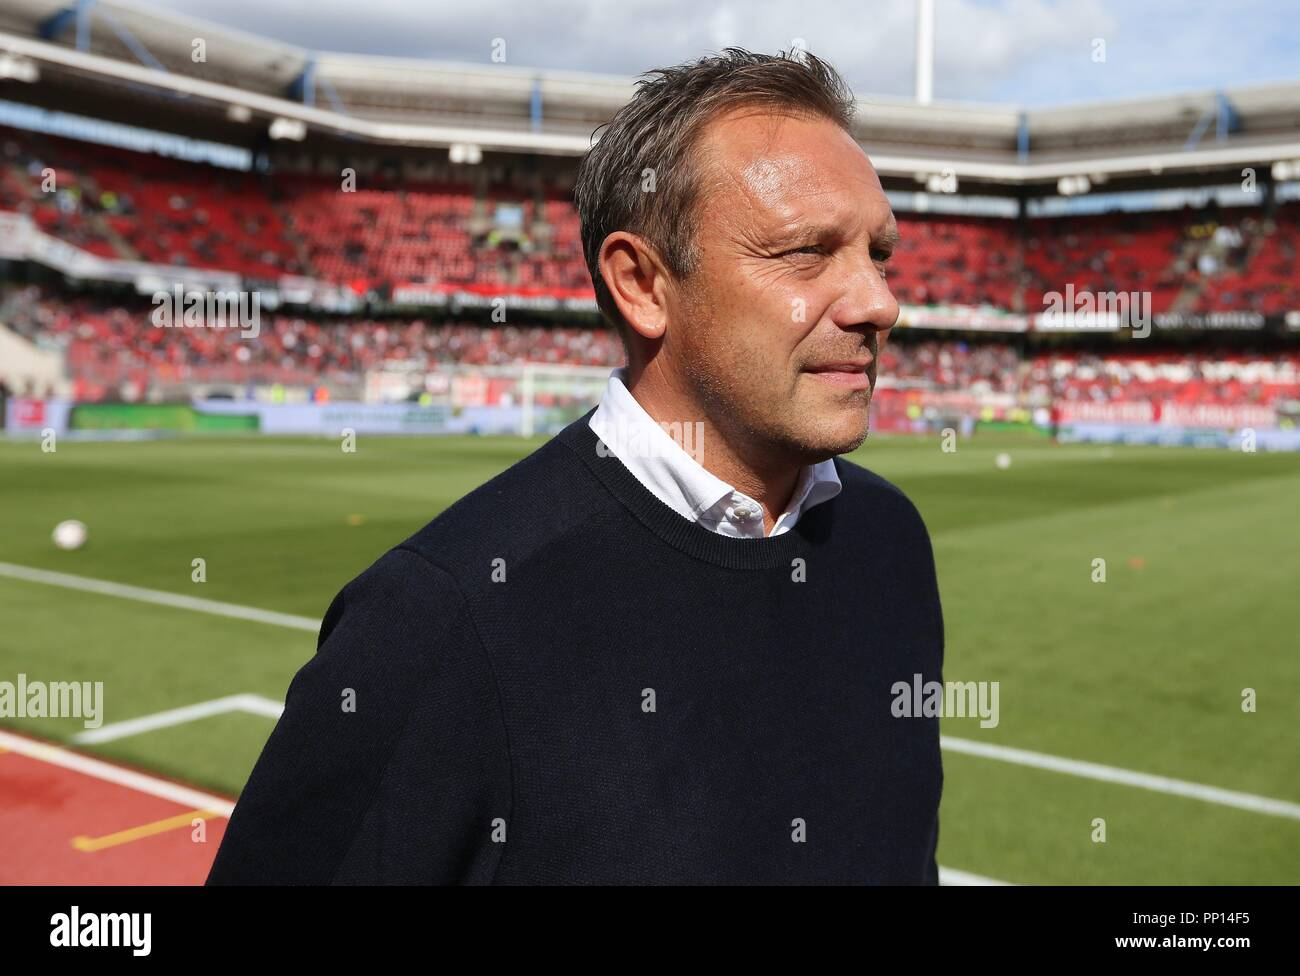 firo: 22.09.2018 Fuvuball, Football: 1.Bundesliga 1.FC Nvºrnberg - Hanover 96, coach Andre Breitenreiter, Hannover, 96, half figure, | usage worldwide Stock Photo